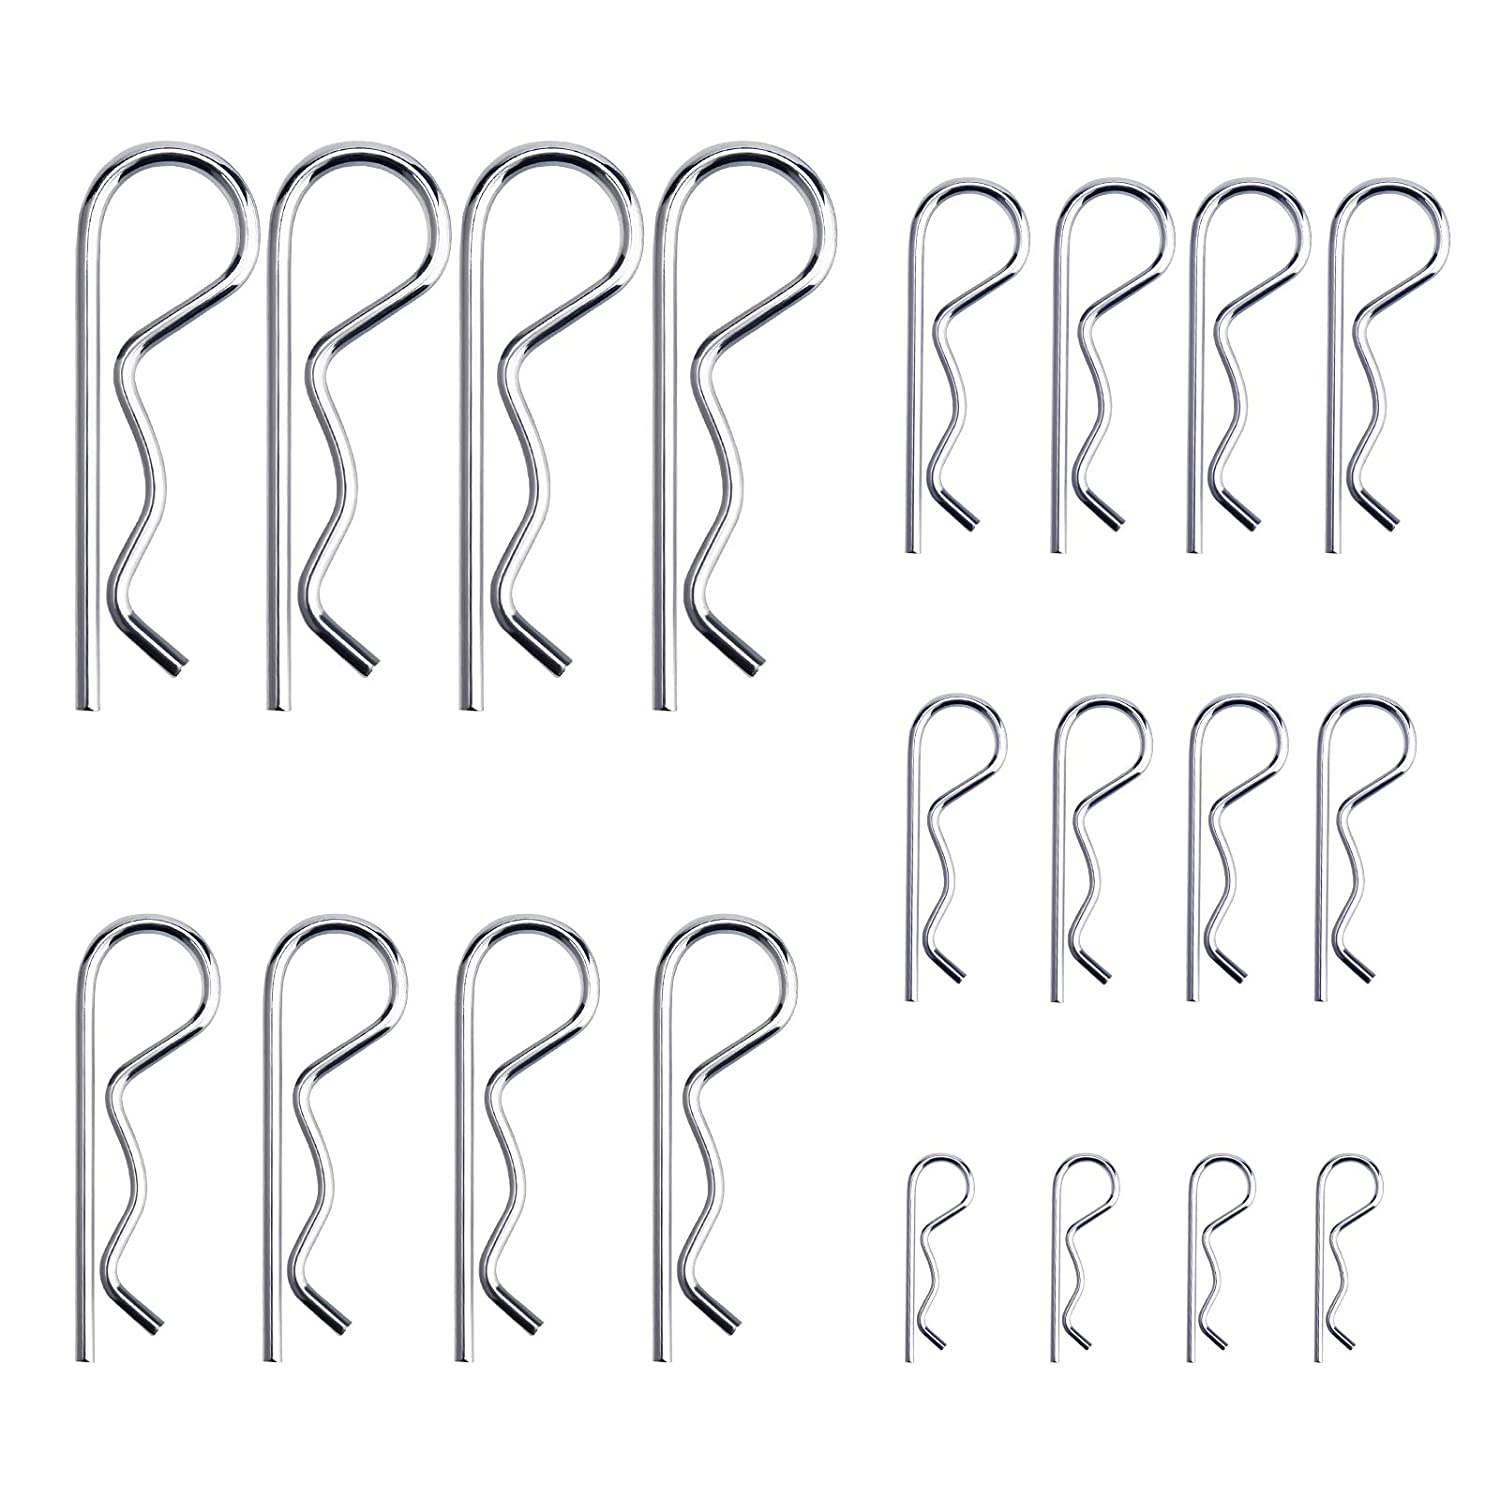 LUTER 20Pcs R Clips Retaining Pins Multiple Sizes M1.2-M3.5 Heavy Duty Zinc Plated Cotter Pin Hairpin Hitch Pin Assortment Kit for Tow Bar Tractors Mower Carts Truck Lock Systems